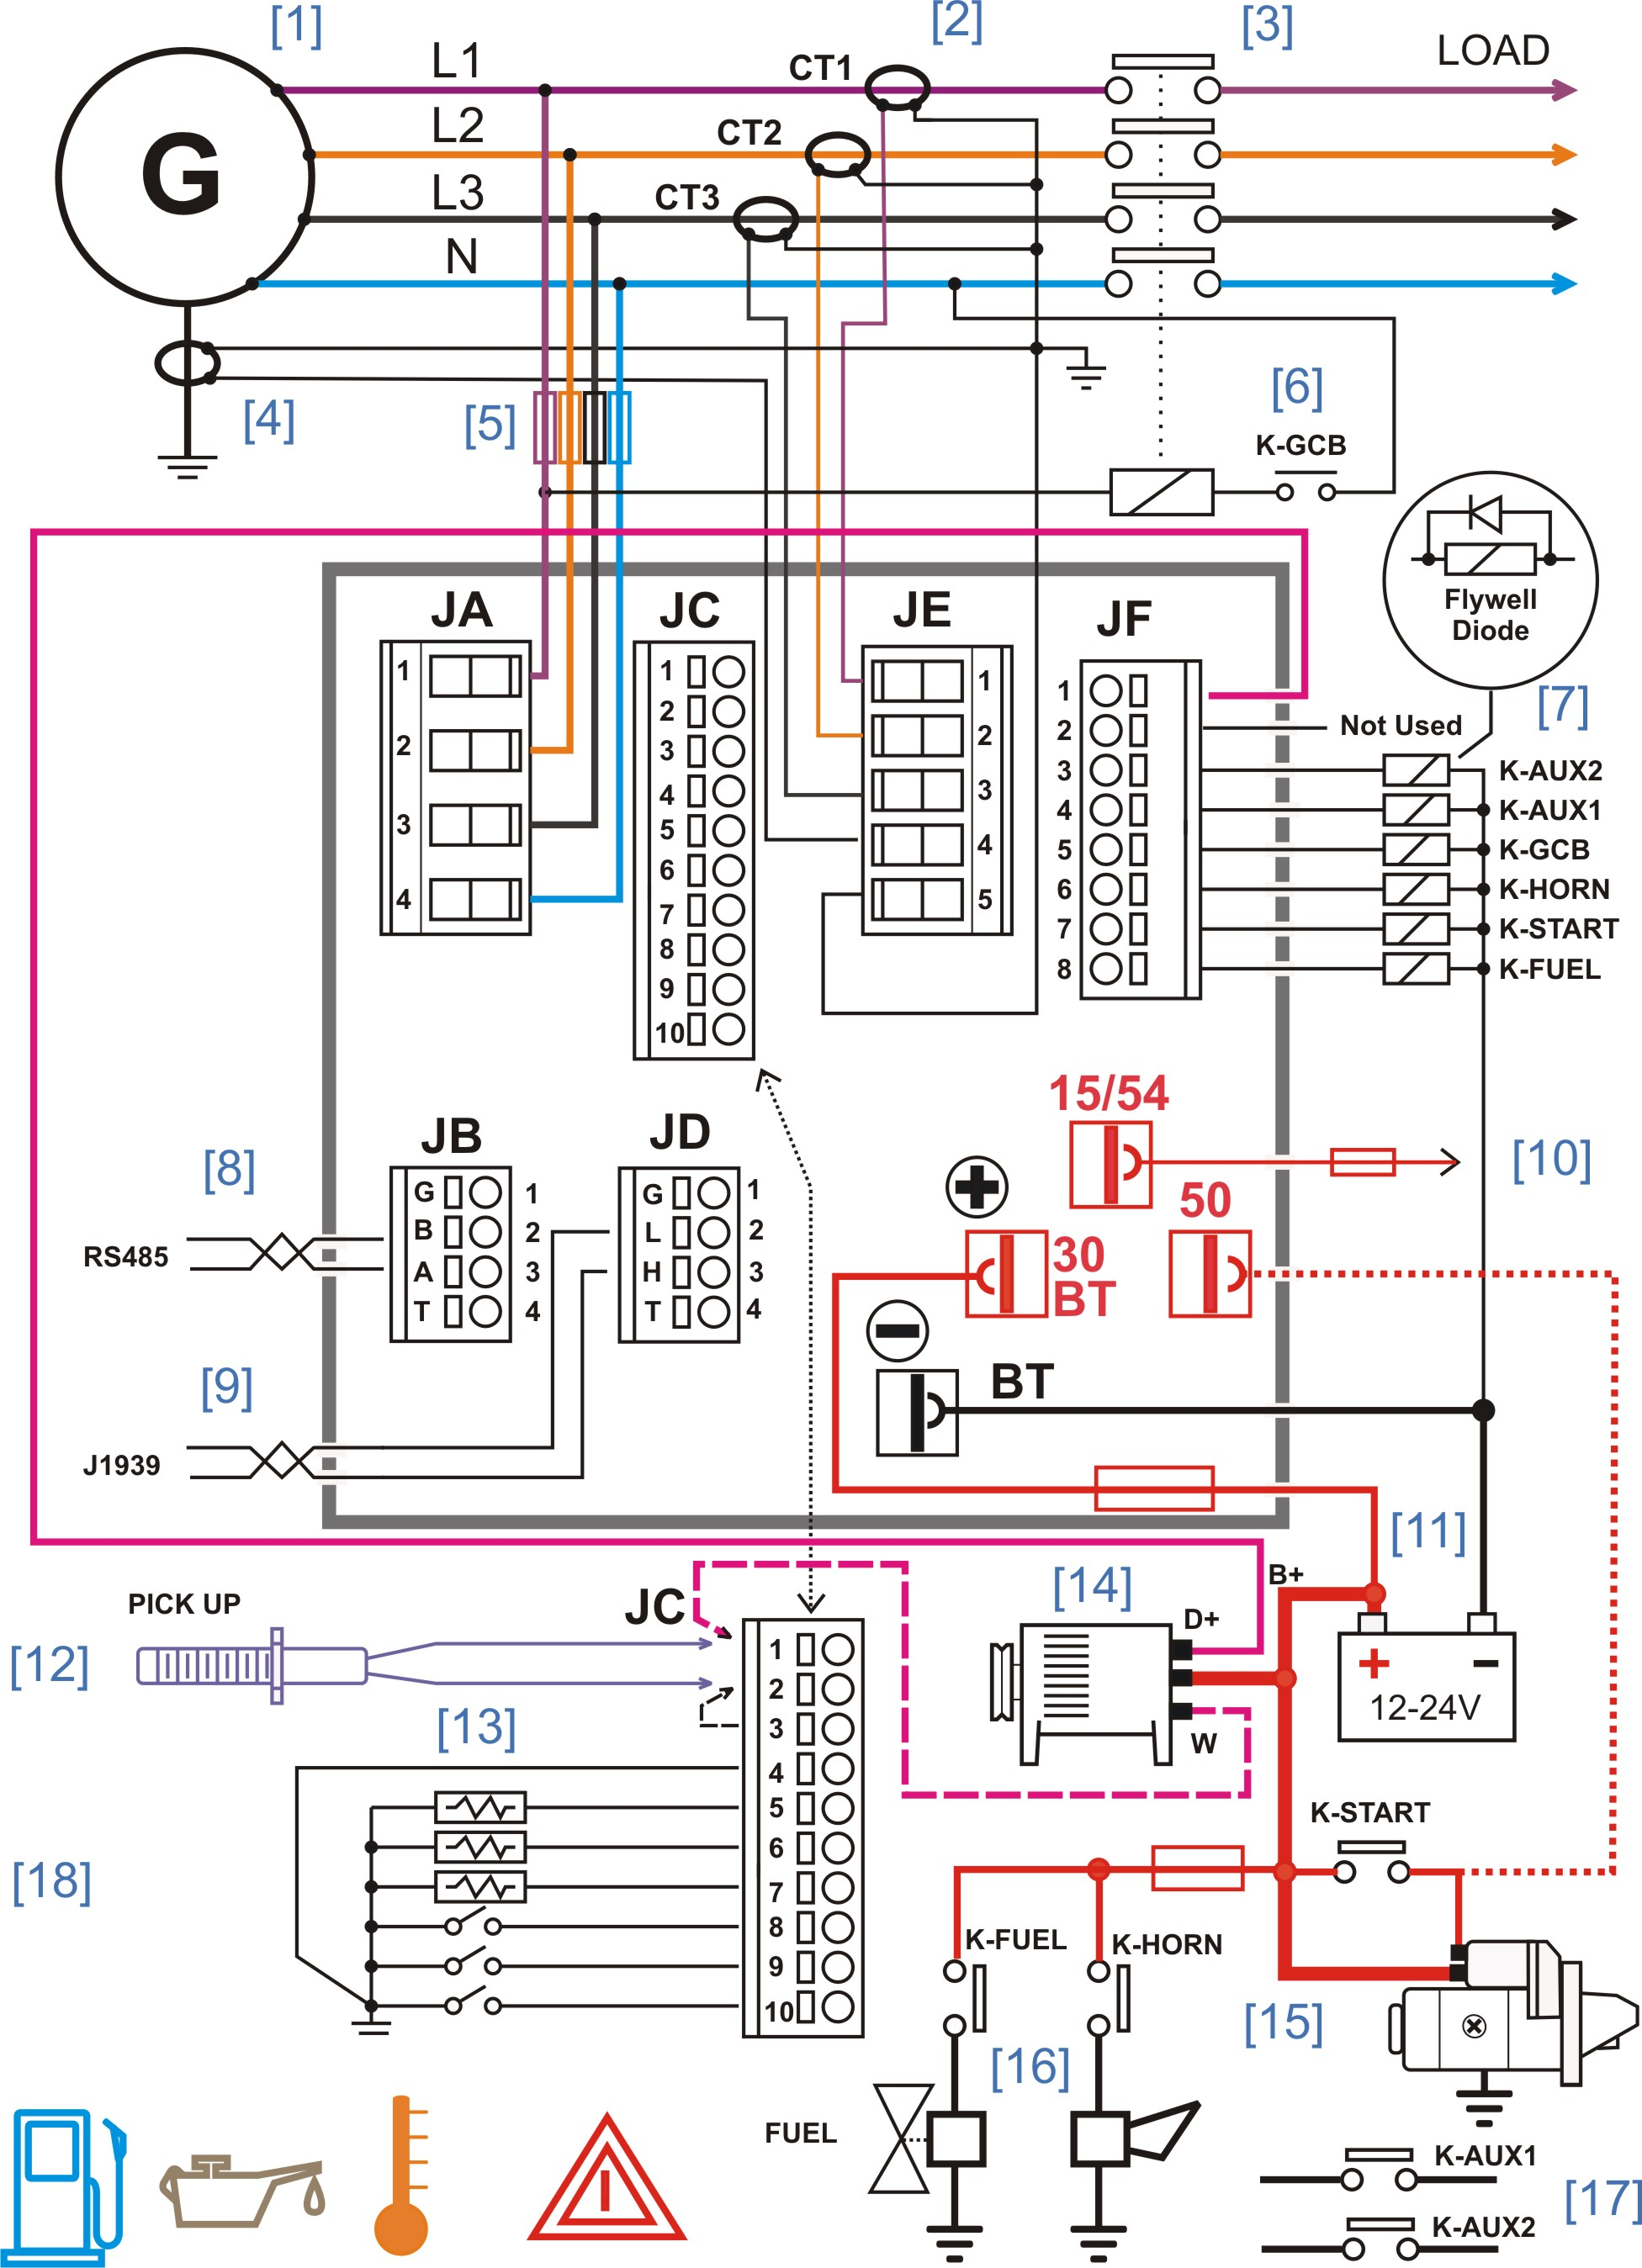 Generator Controller Wiring Diagram generator controller wiring diagram genset controller controller wire diagram for 3246e2 lift at webbmarketing.co